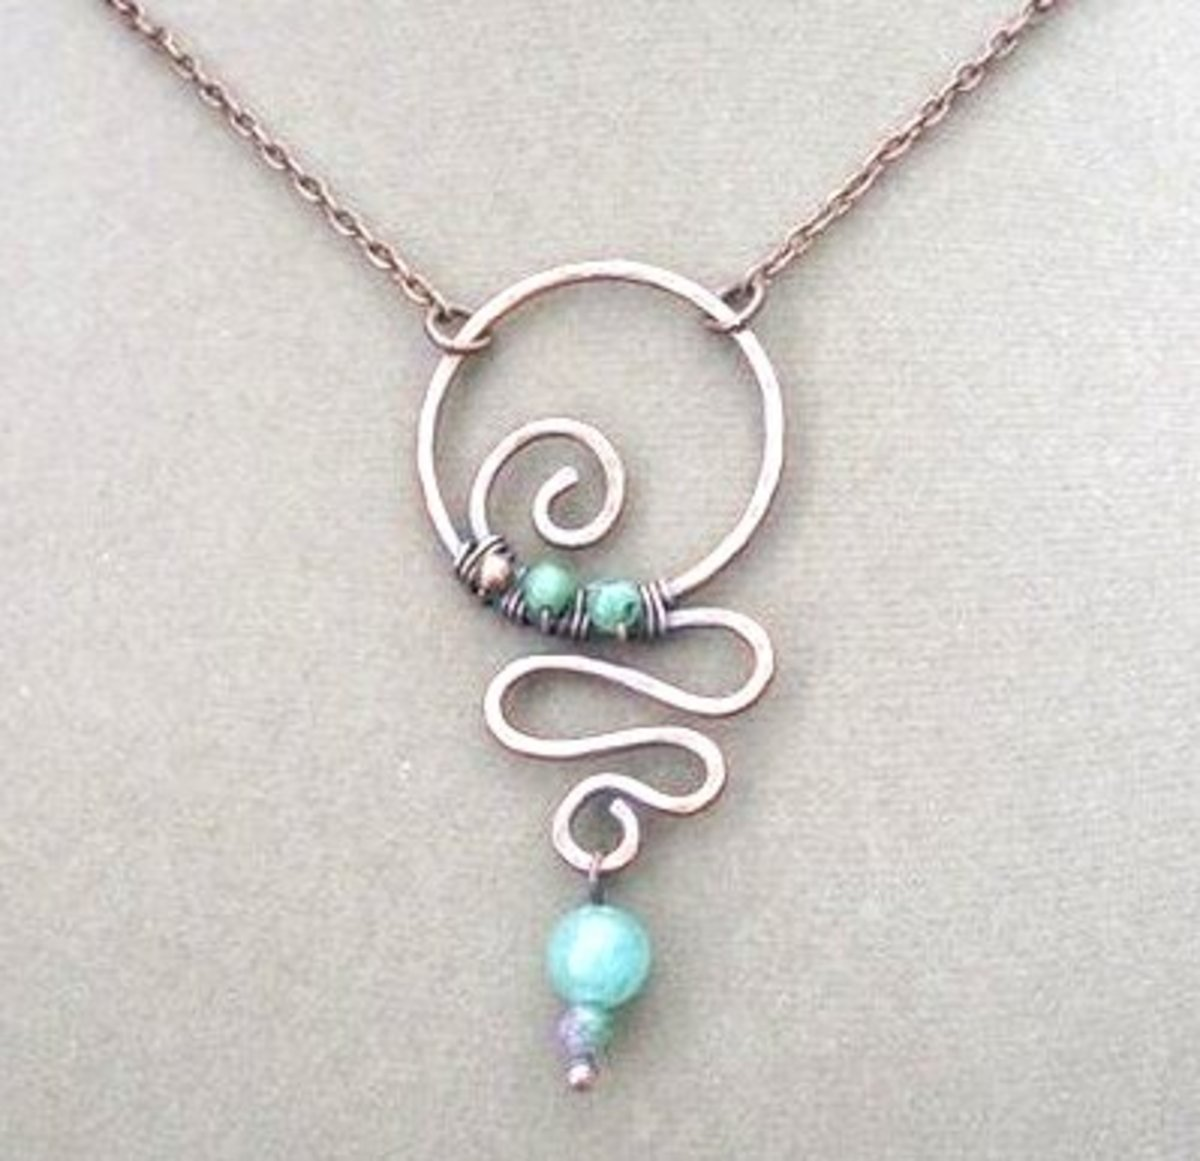 This necklace is a little more advanced, but in my opinion, once you learn how to work with wire, it would be fairly simple to make with the right supplies